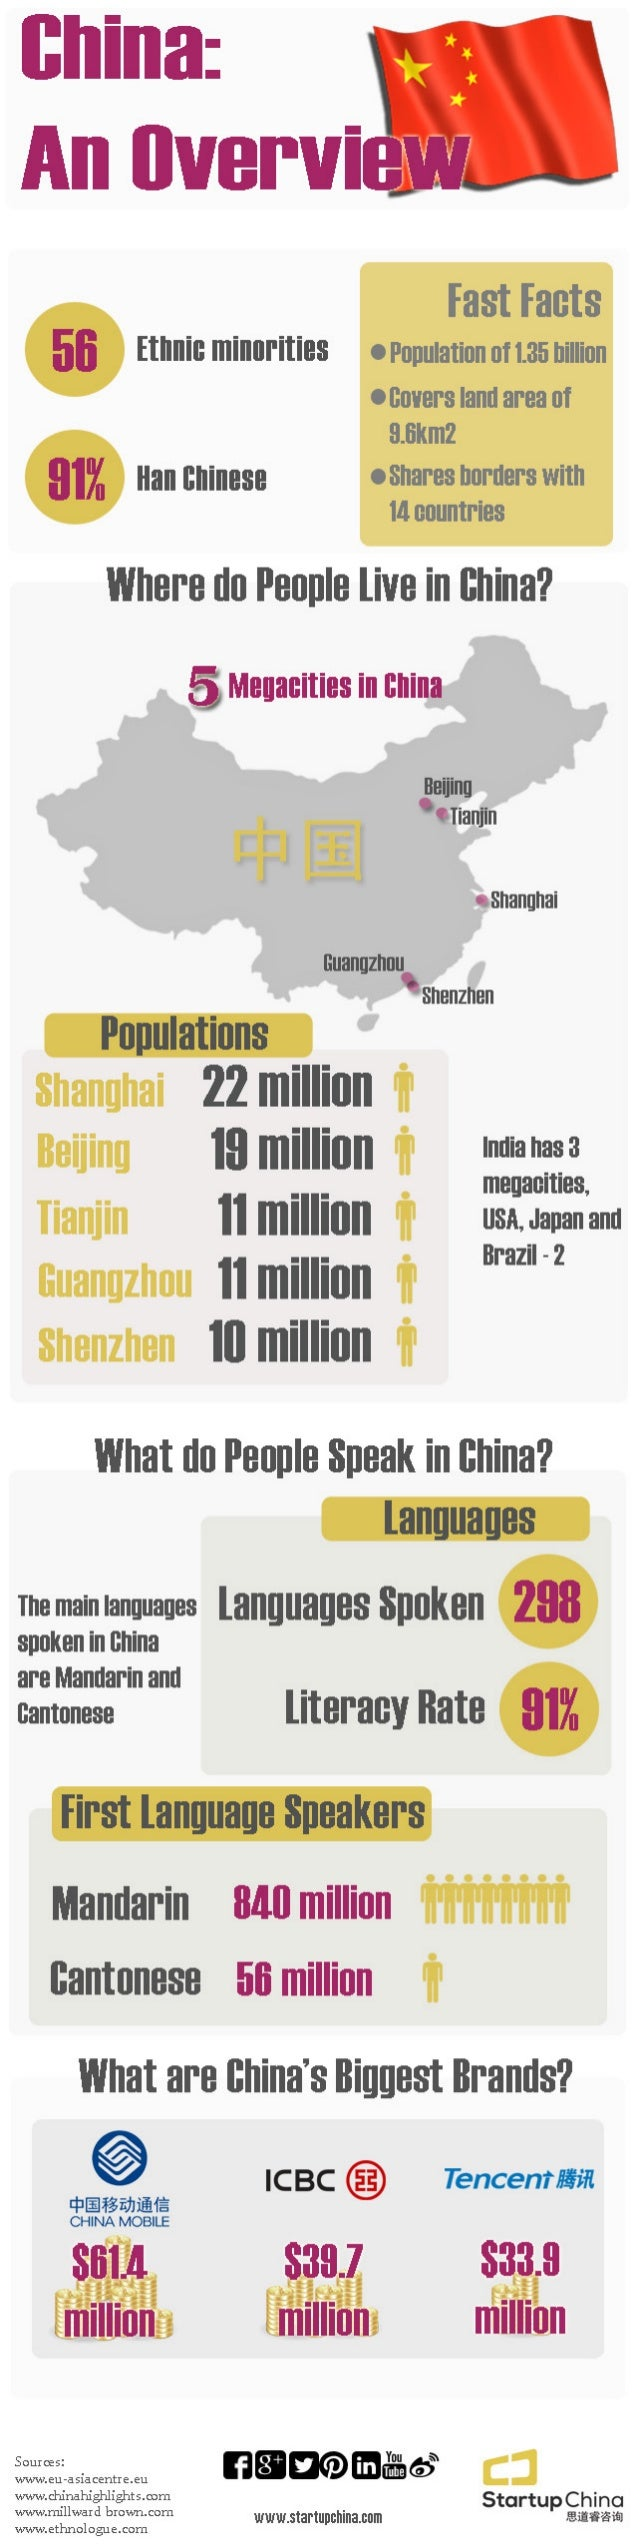 China: An Overview